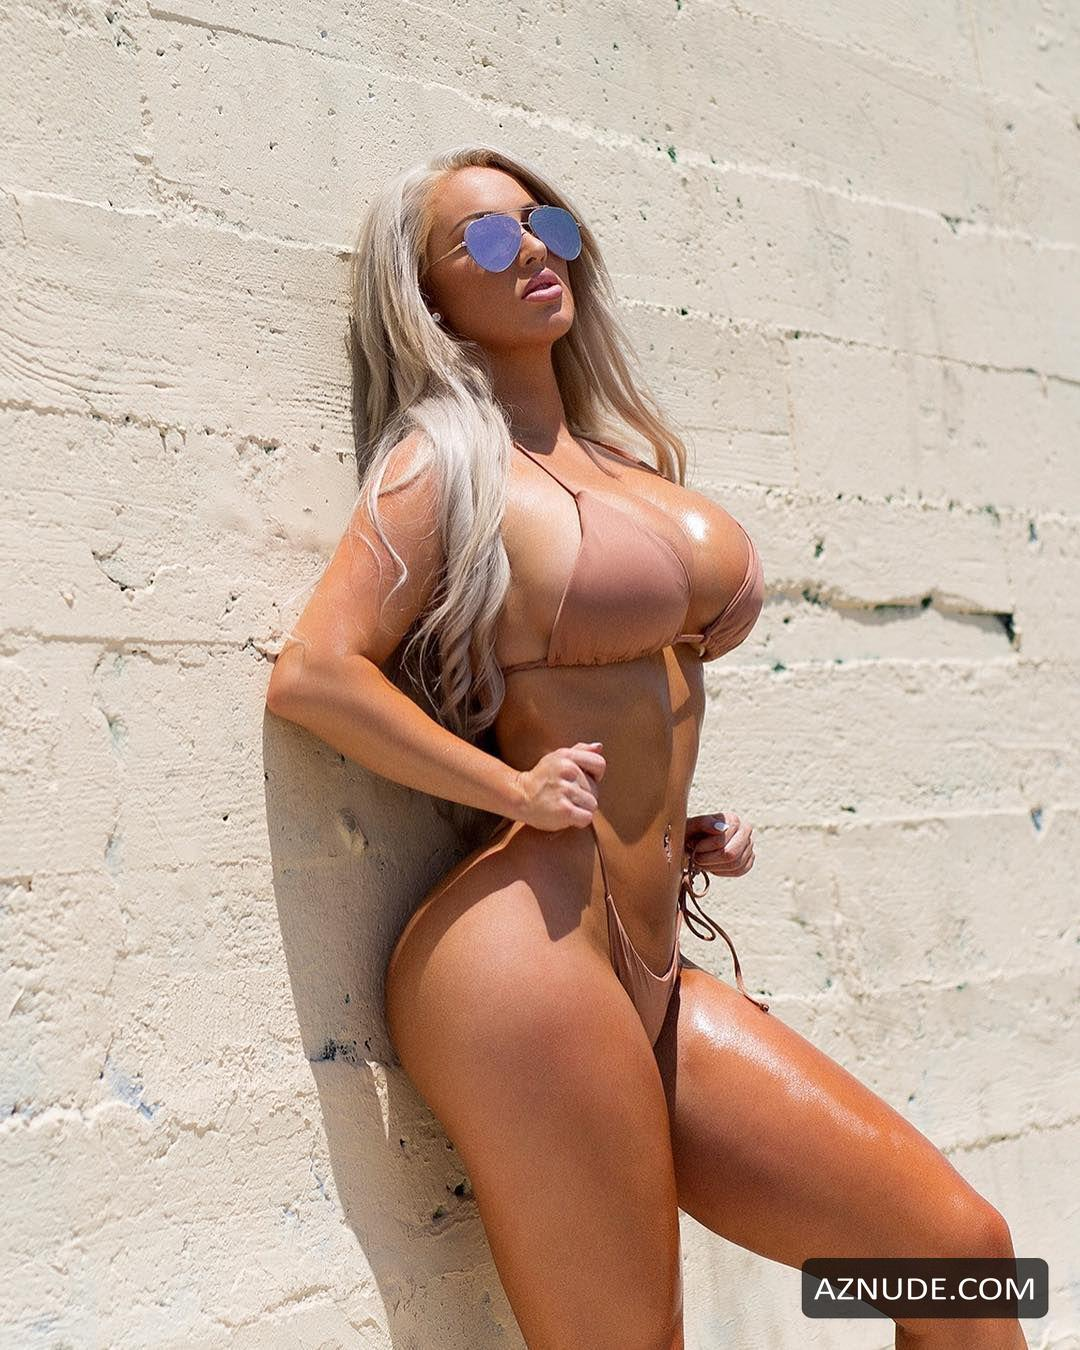 Laci Kay Somers Nude And Sexy Photosvideos From Her -6339